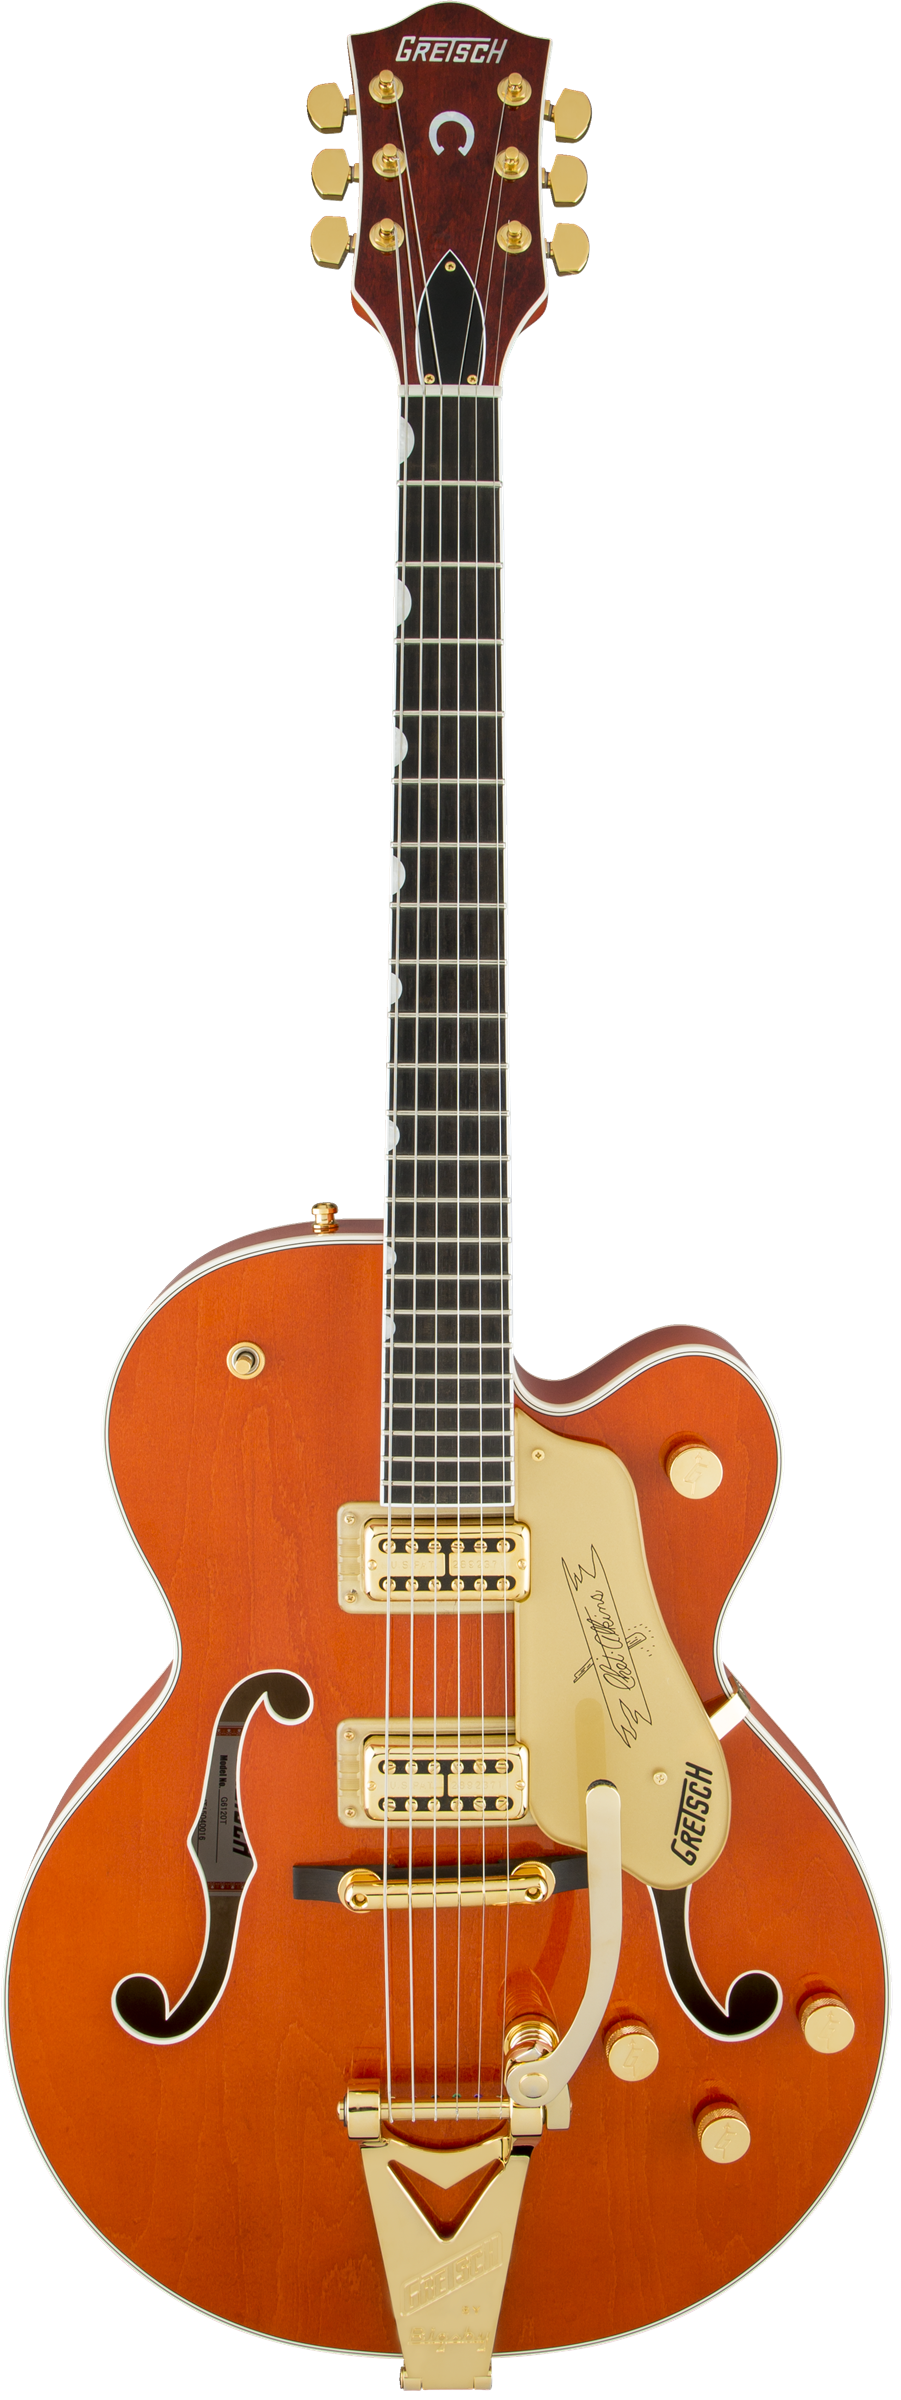 Gretsch G6120T Players Edition Nashville Hollow Body Electric Guitar W/ Bigsby - Ebony Fingerboard, Orange Stain